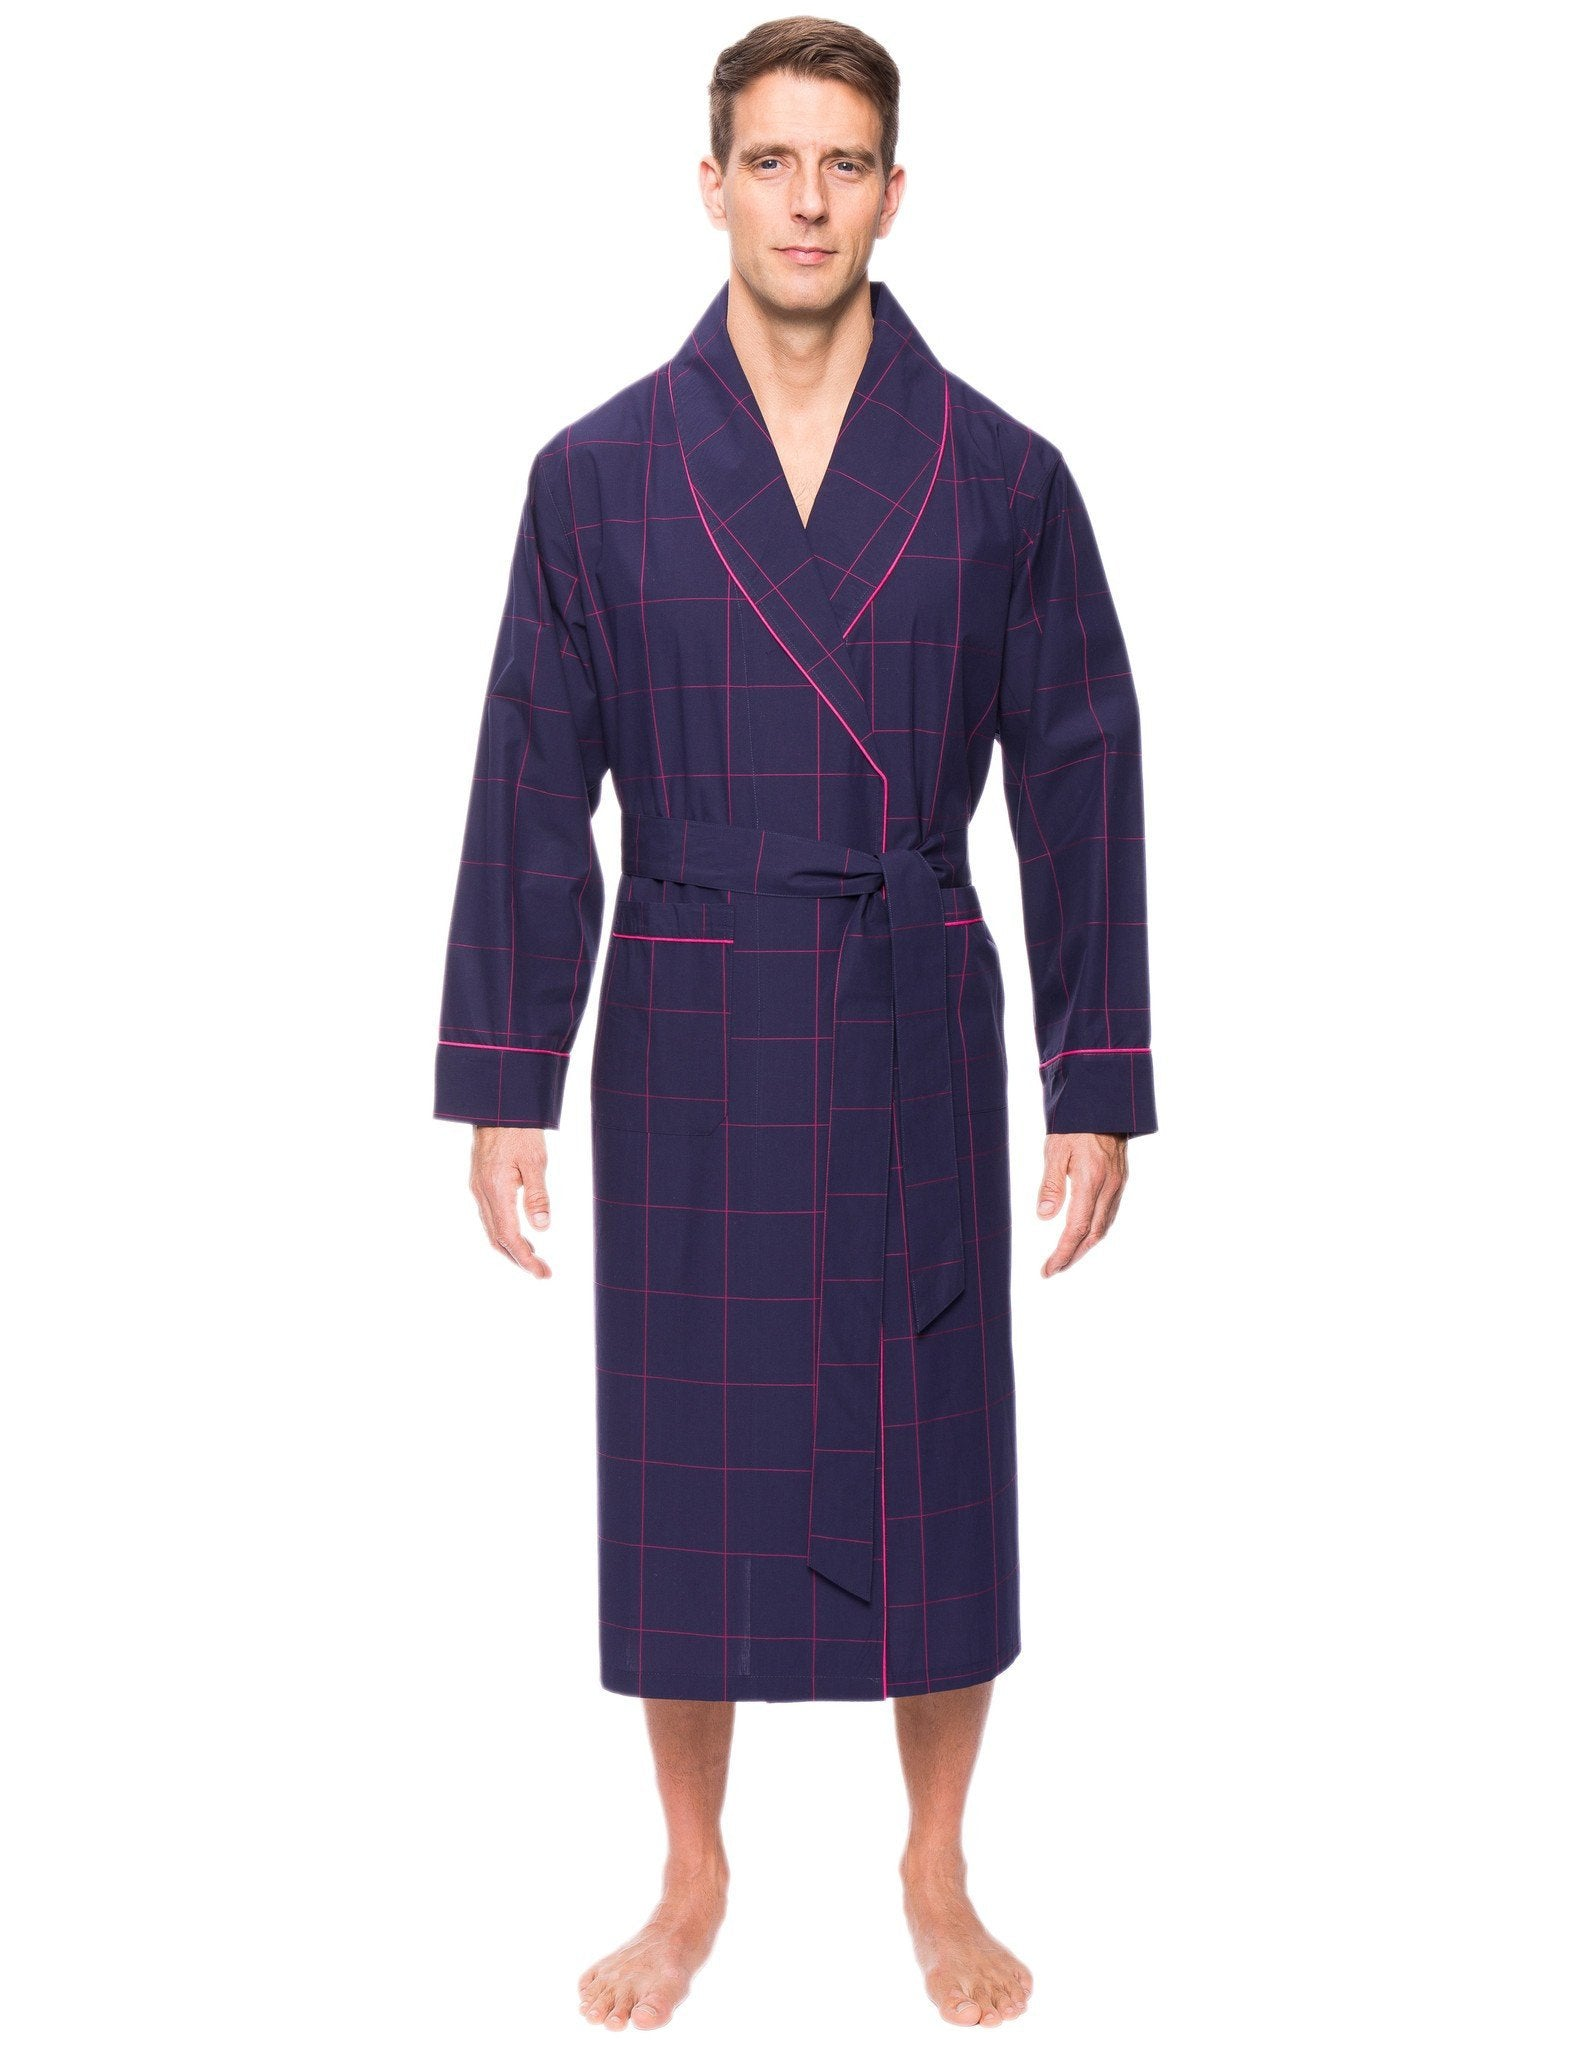 Mens Premium 100% Cotton Robe - Windowpane Checks Blue/Red